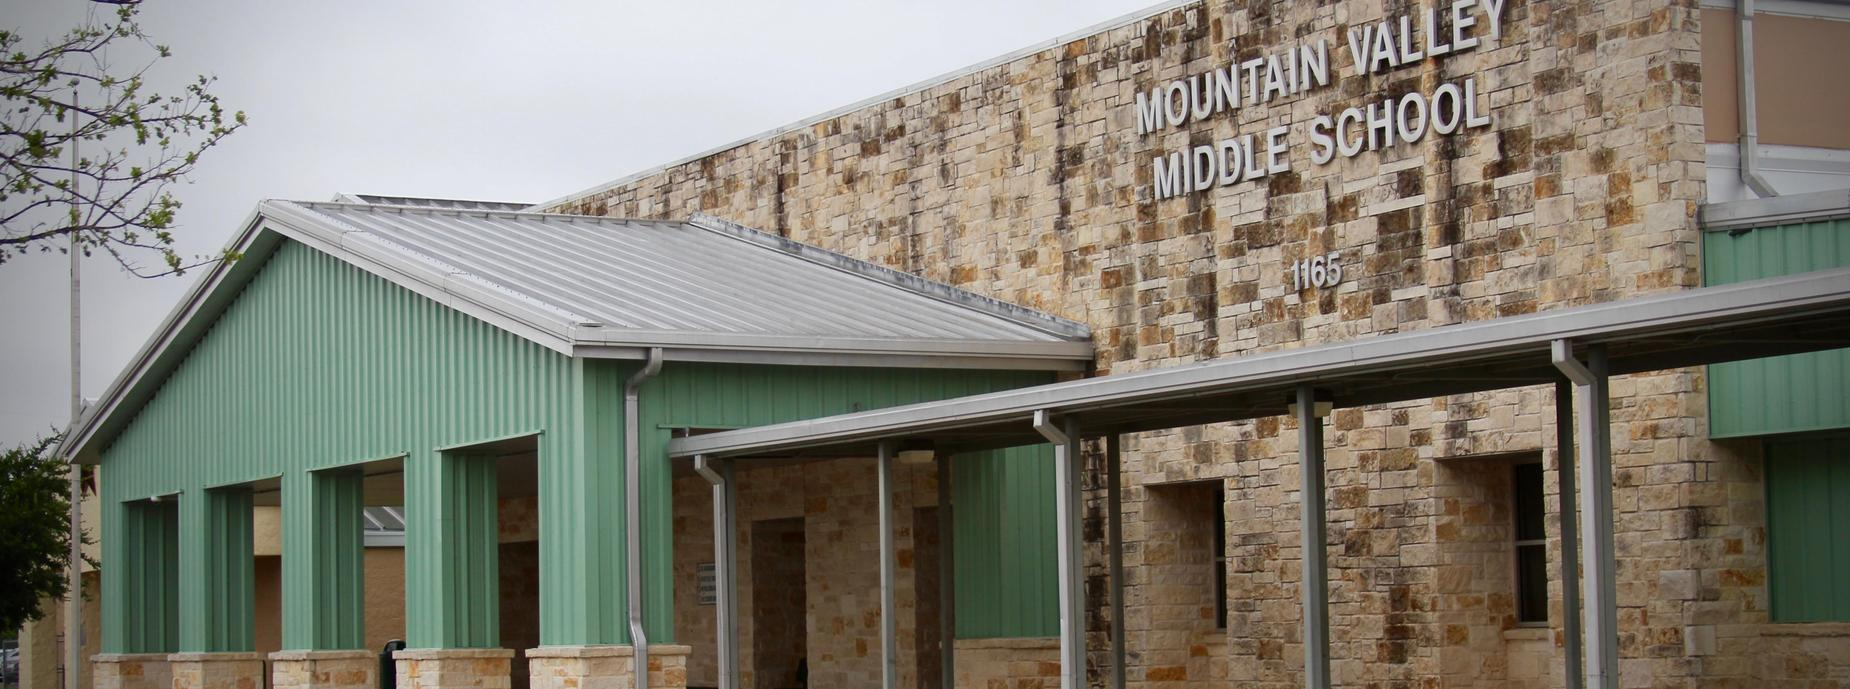 Mountain Valley Middle School